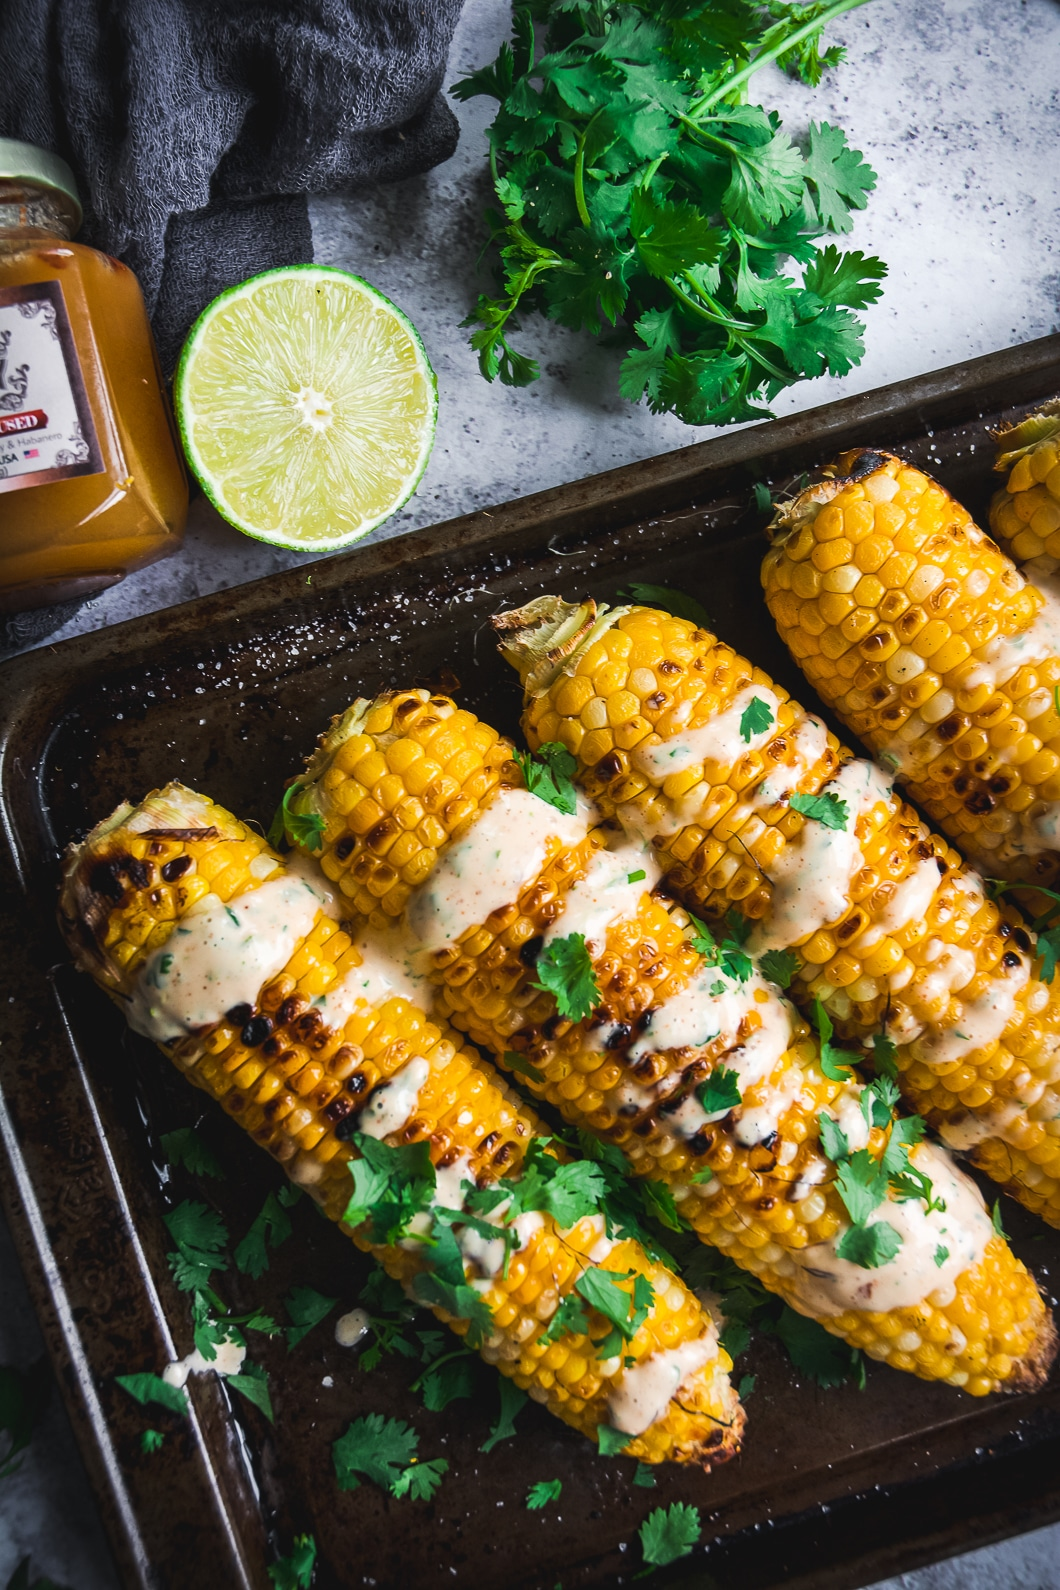 Grilled Corn with Spicy Habanero Honey Mayo drizzled over the corn with lime slice and cilantro